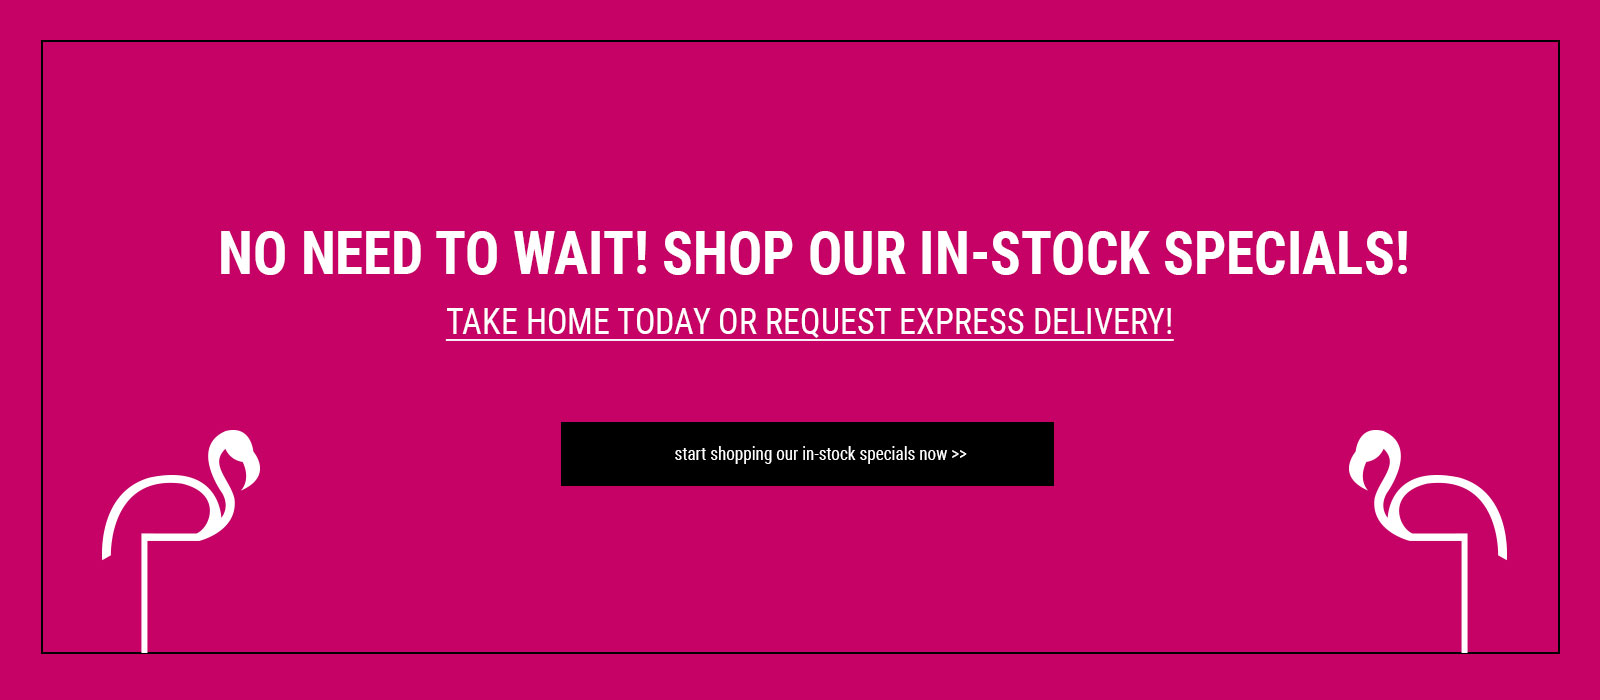 NO NEED TO WAIT! SHOP OUR IN-STOCK SPECIALS! TAKE HOME TODAY OR REQUEST EXPRESS DELIVERY!